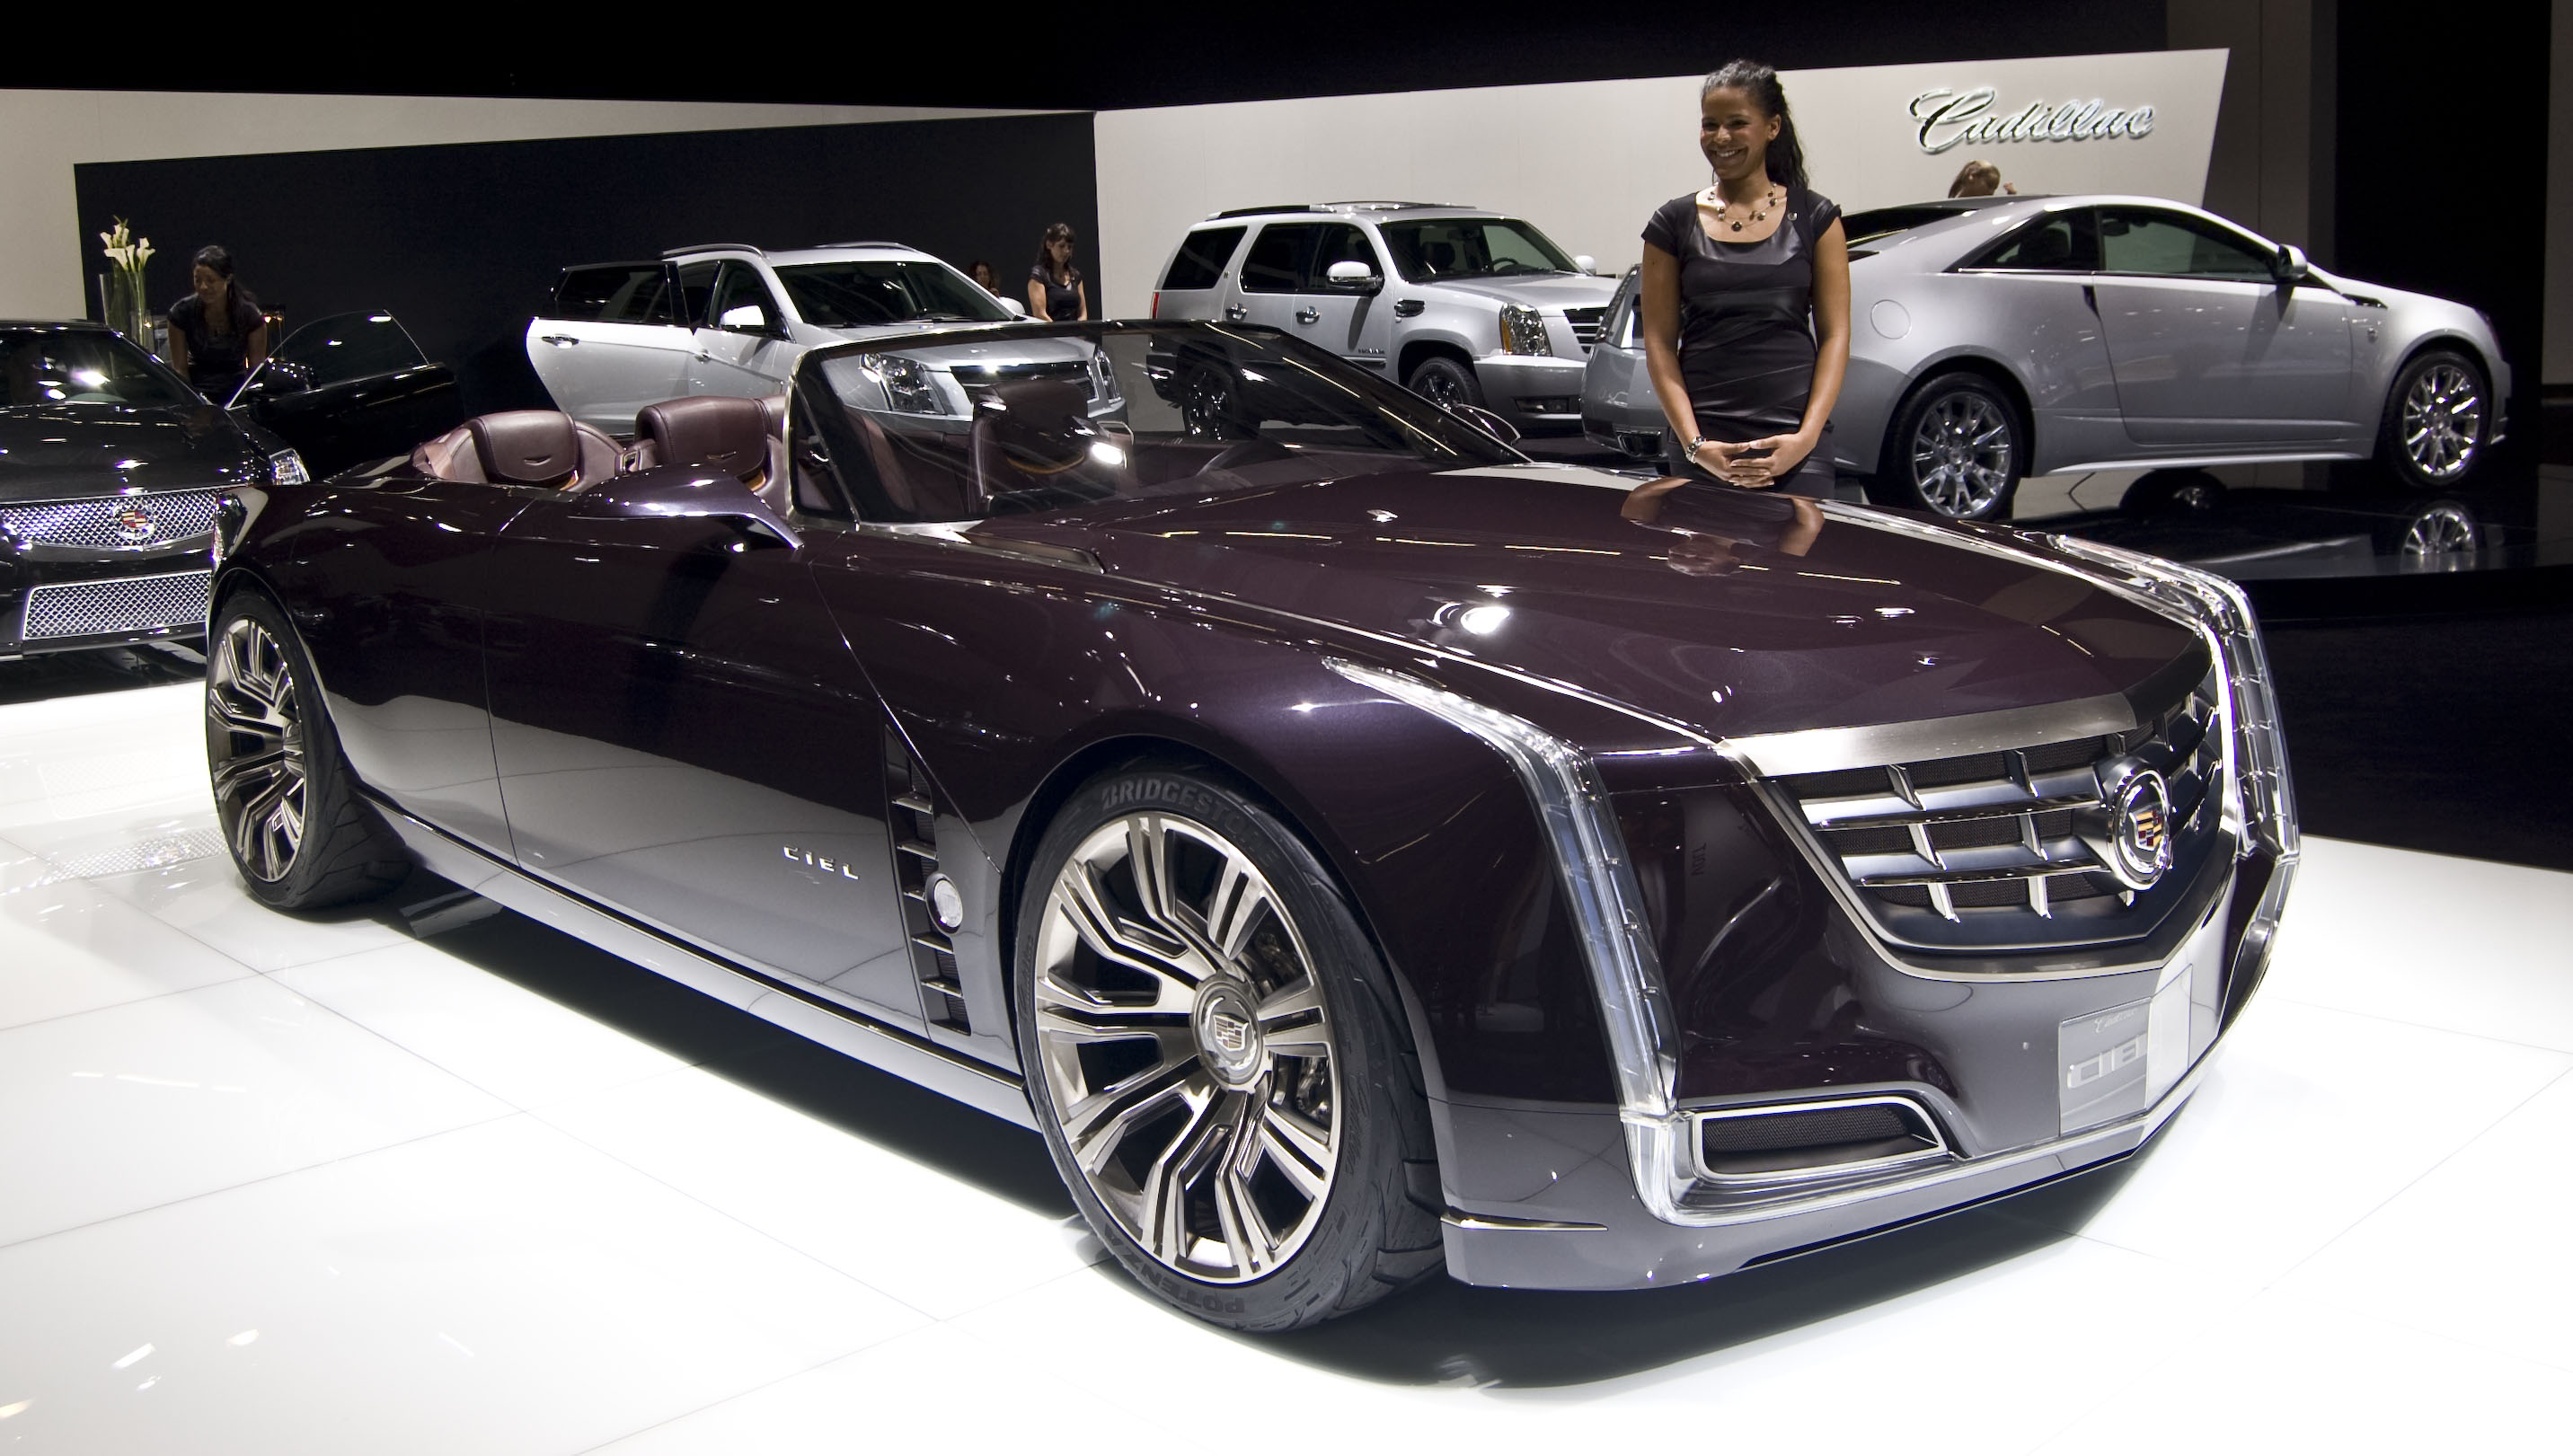 Cadillac Ciel Price >> [Fan Question] Who would like to see a replica of the Regalia(Player Car) in the real world ...